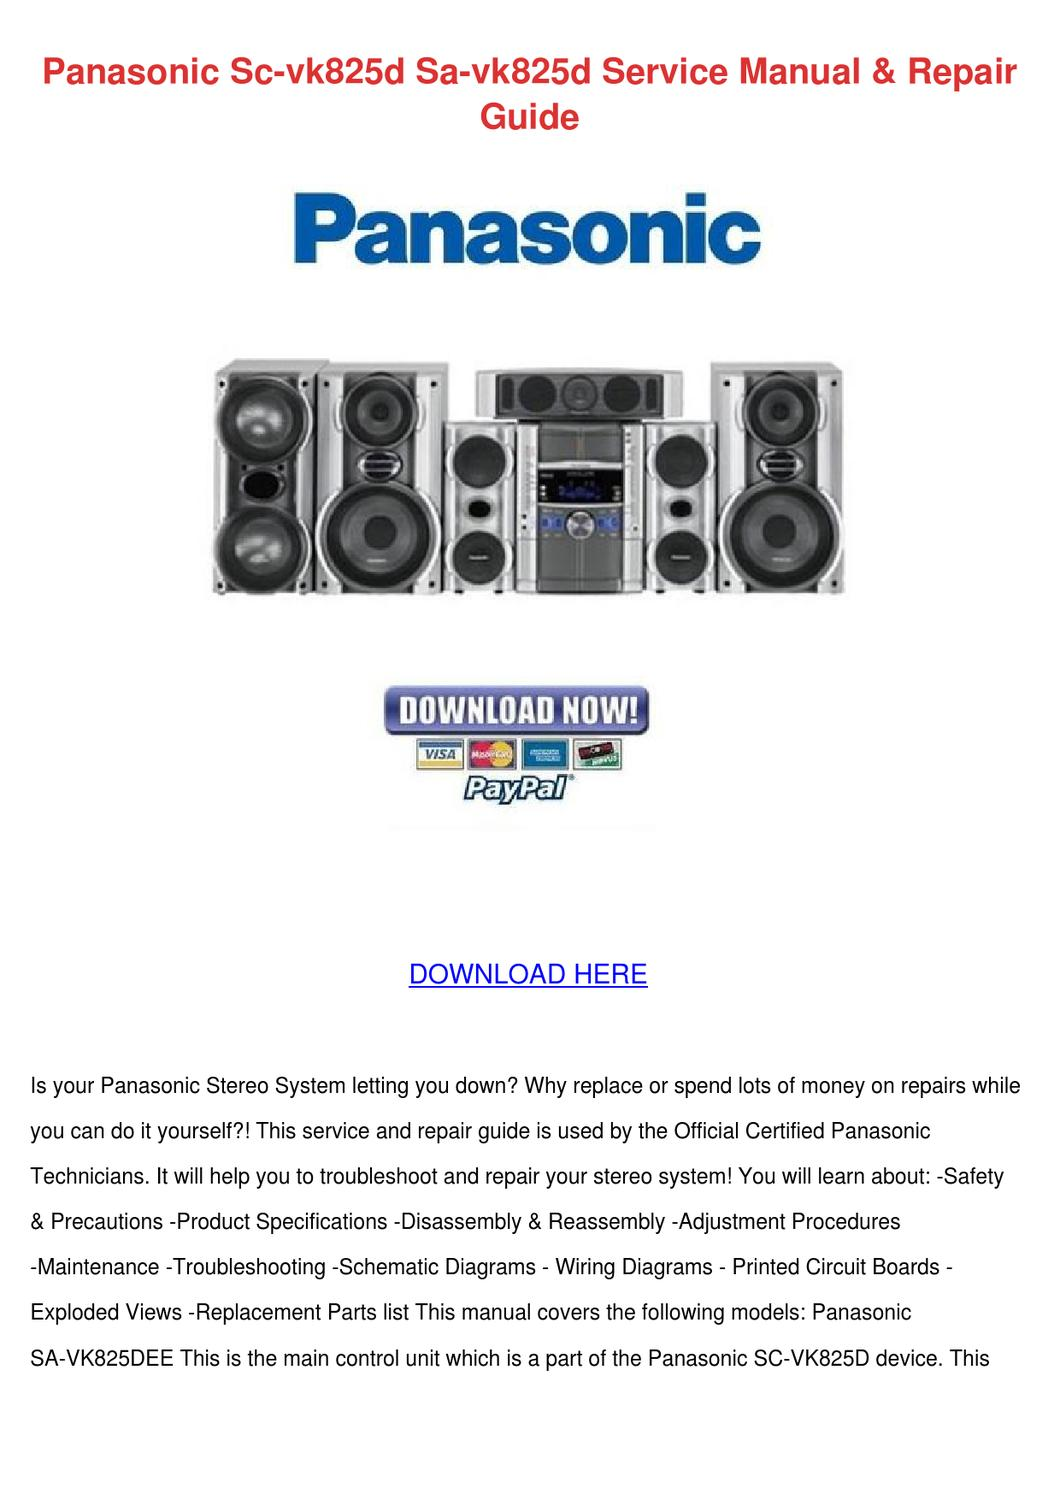 panasonic sc vk825d sa vk825d service manual by cerysboyd. Black Bedroom Furniture Sets. Home Design Ideas